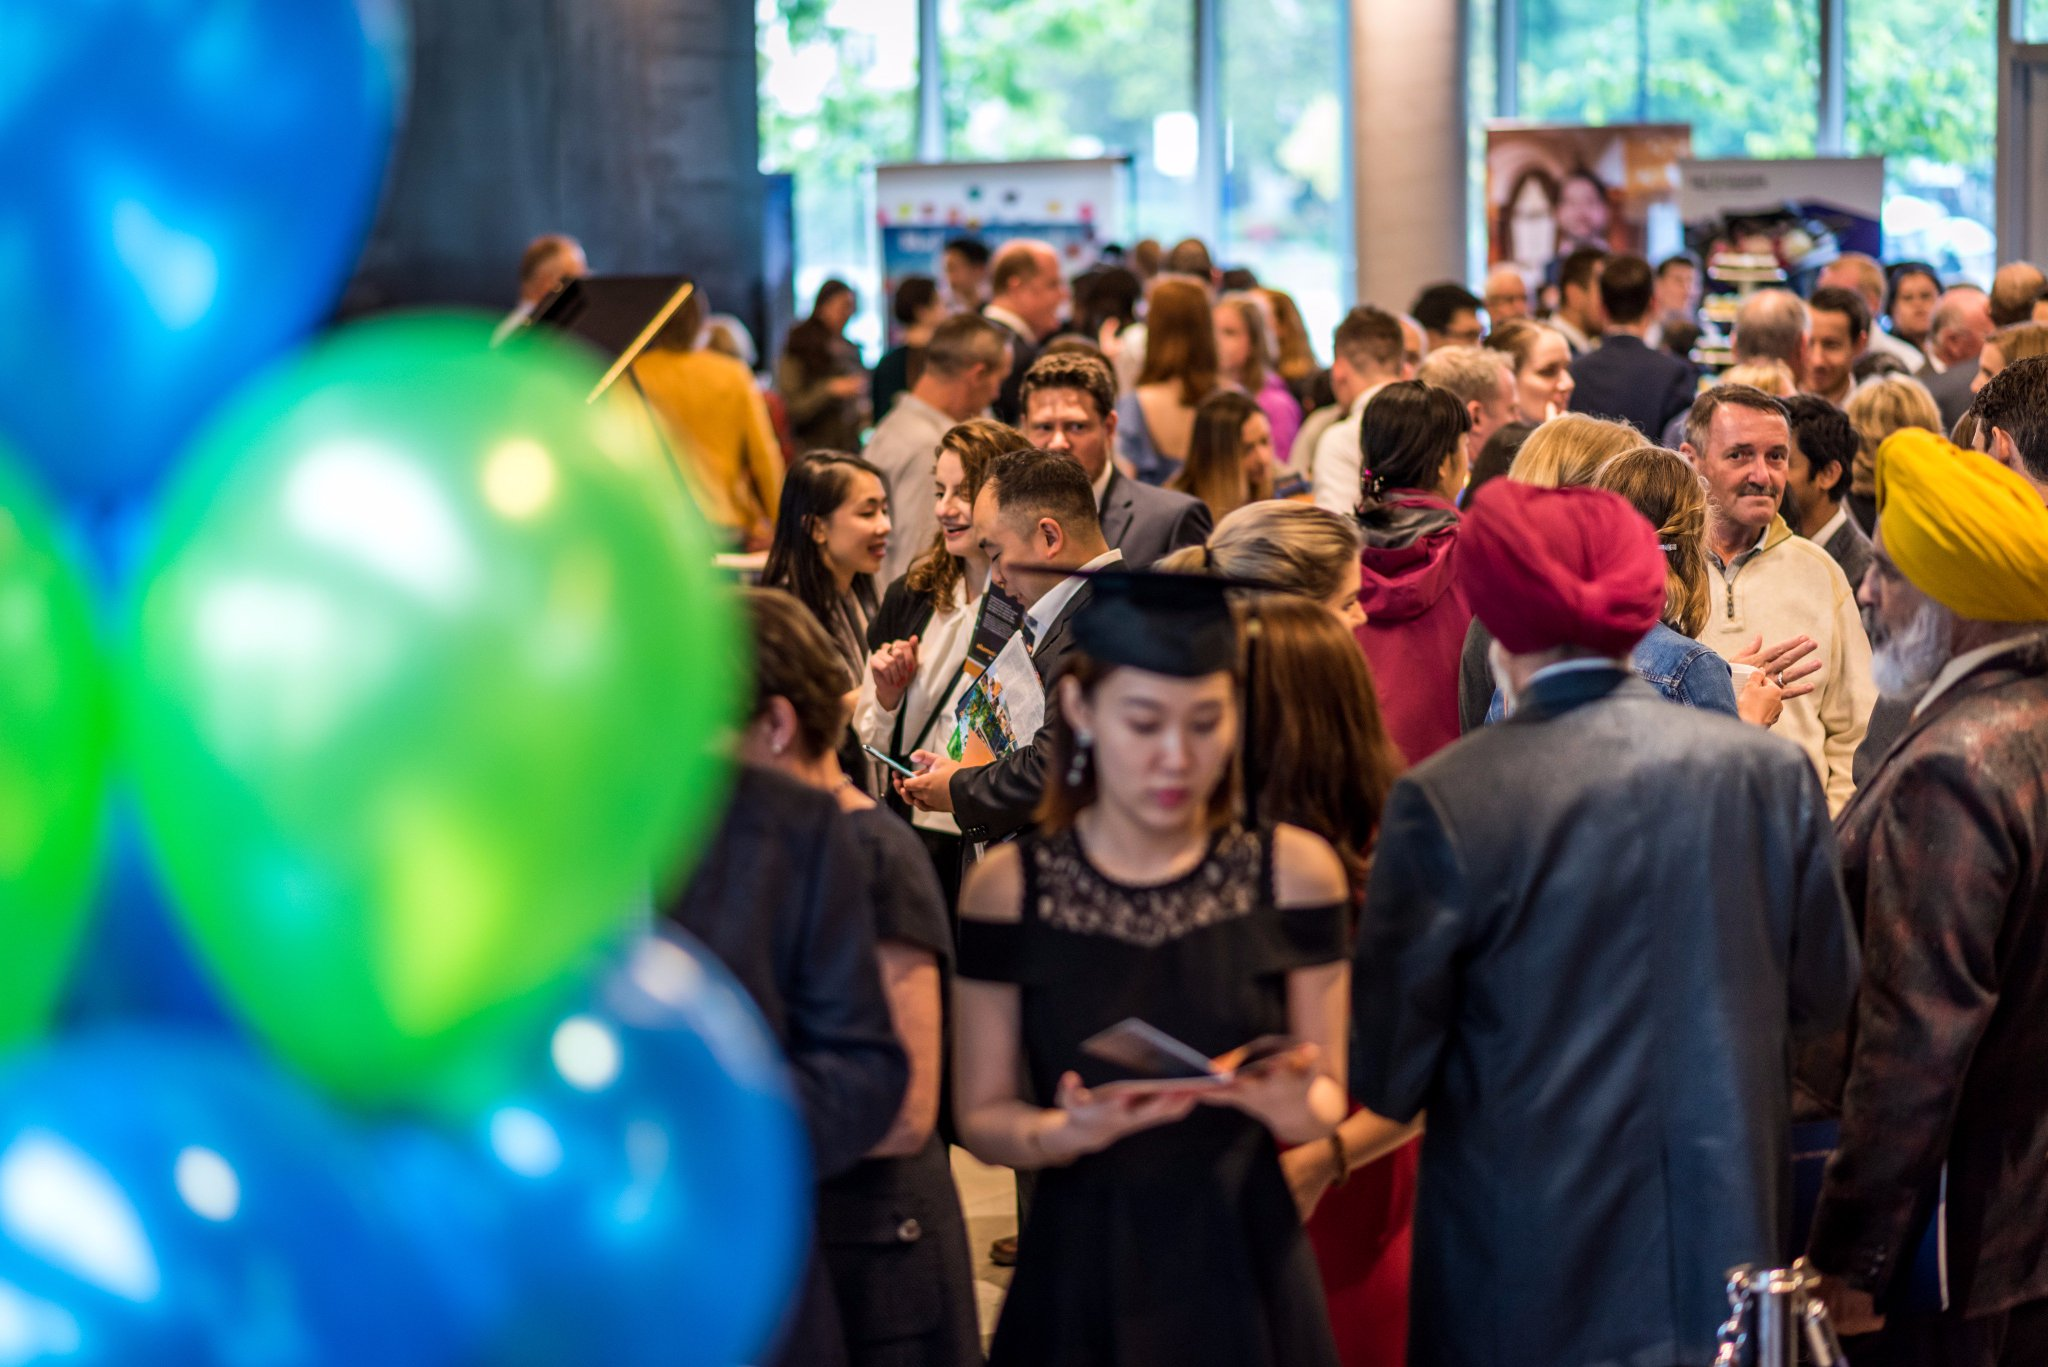 Here's to the class of 2017! #ubcgrad https://t.co/Qfv5jbFsaE